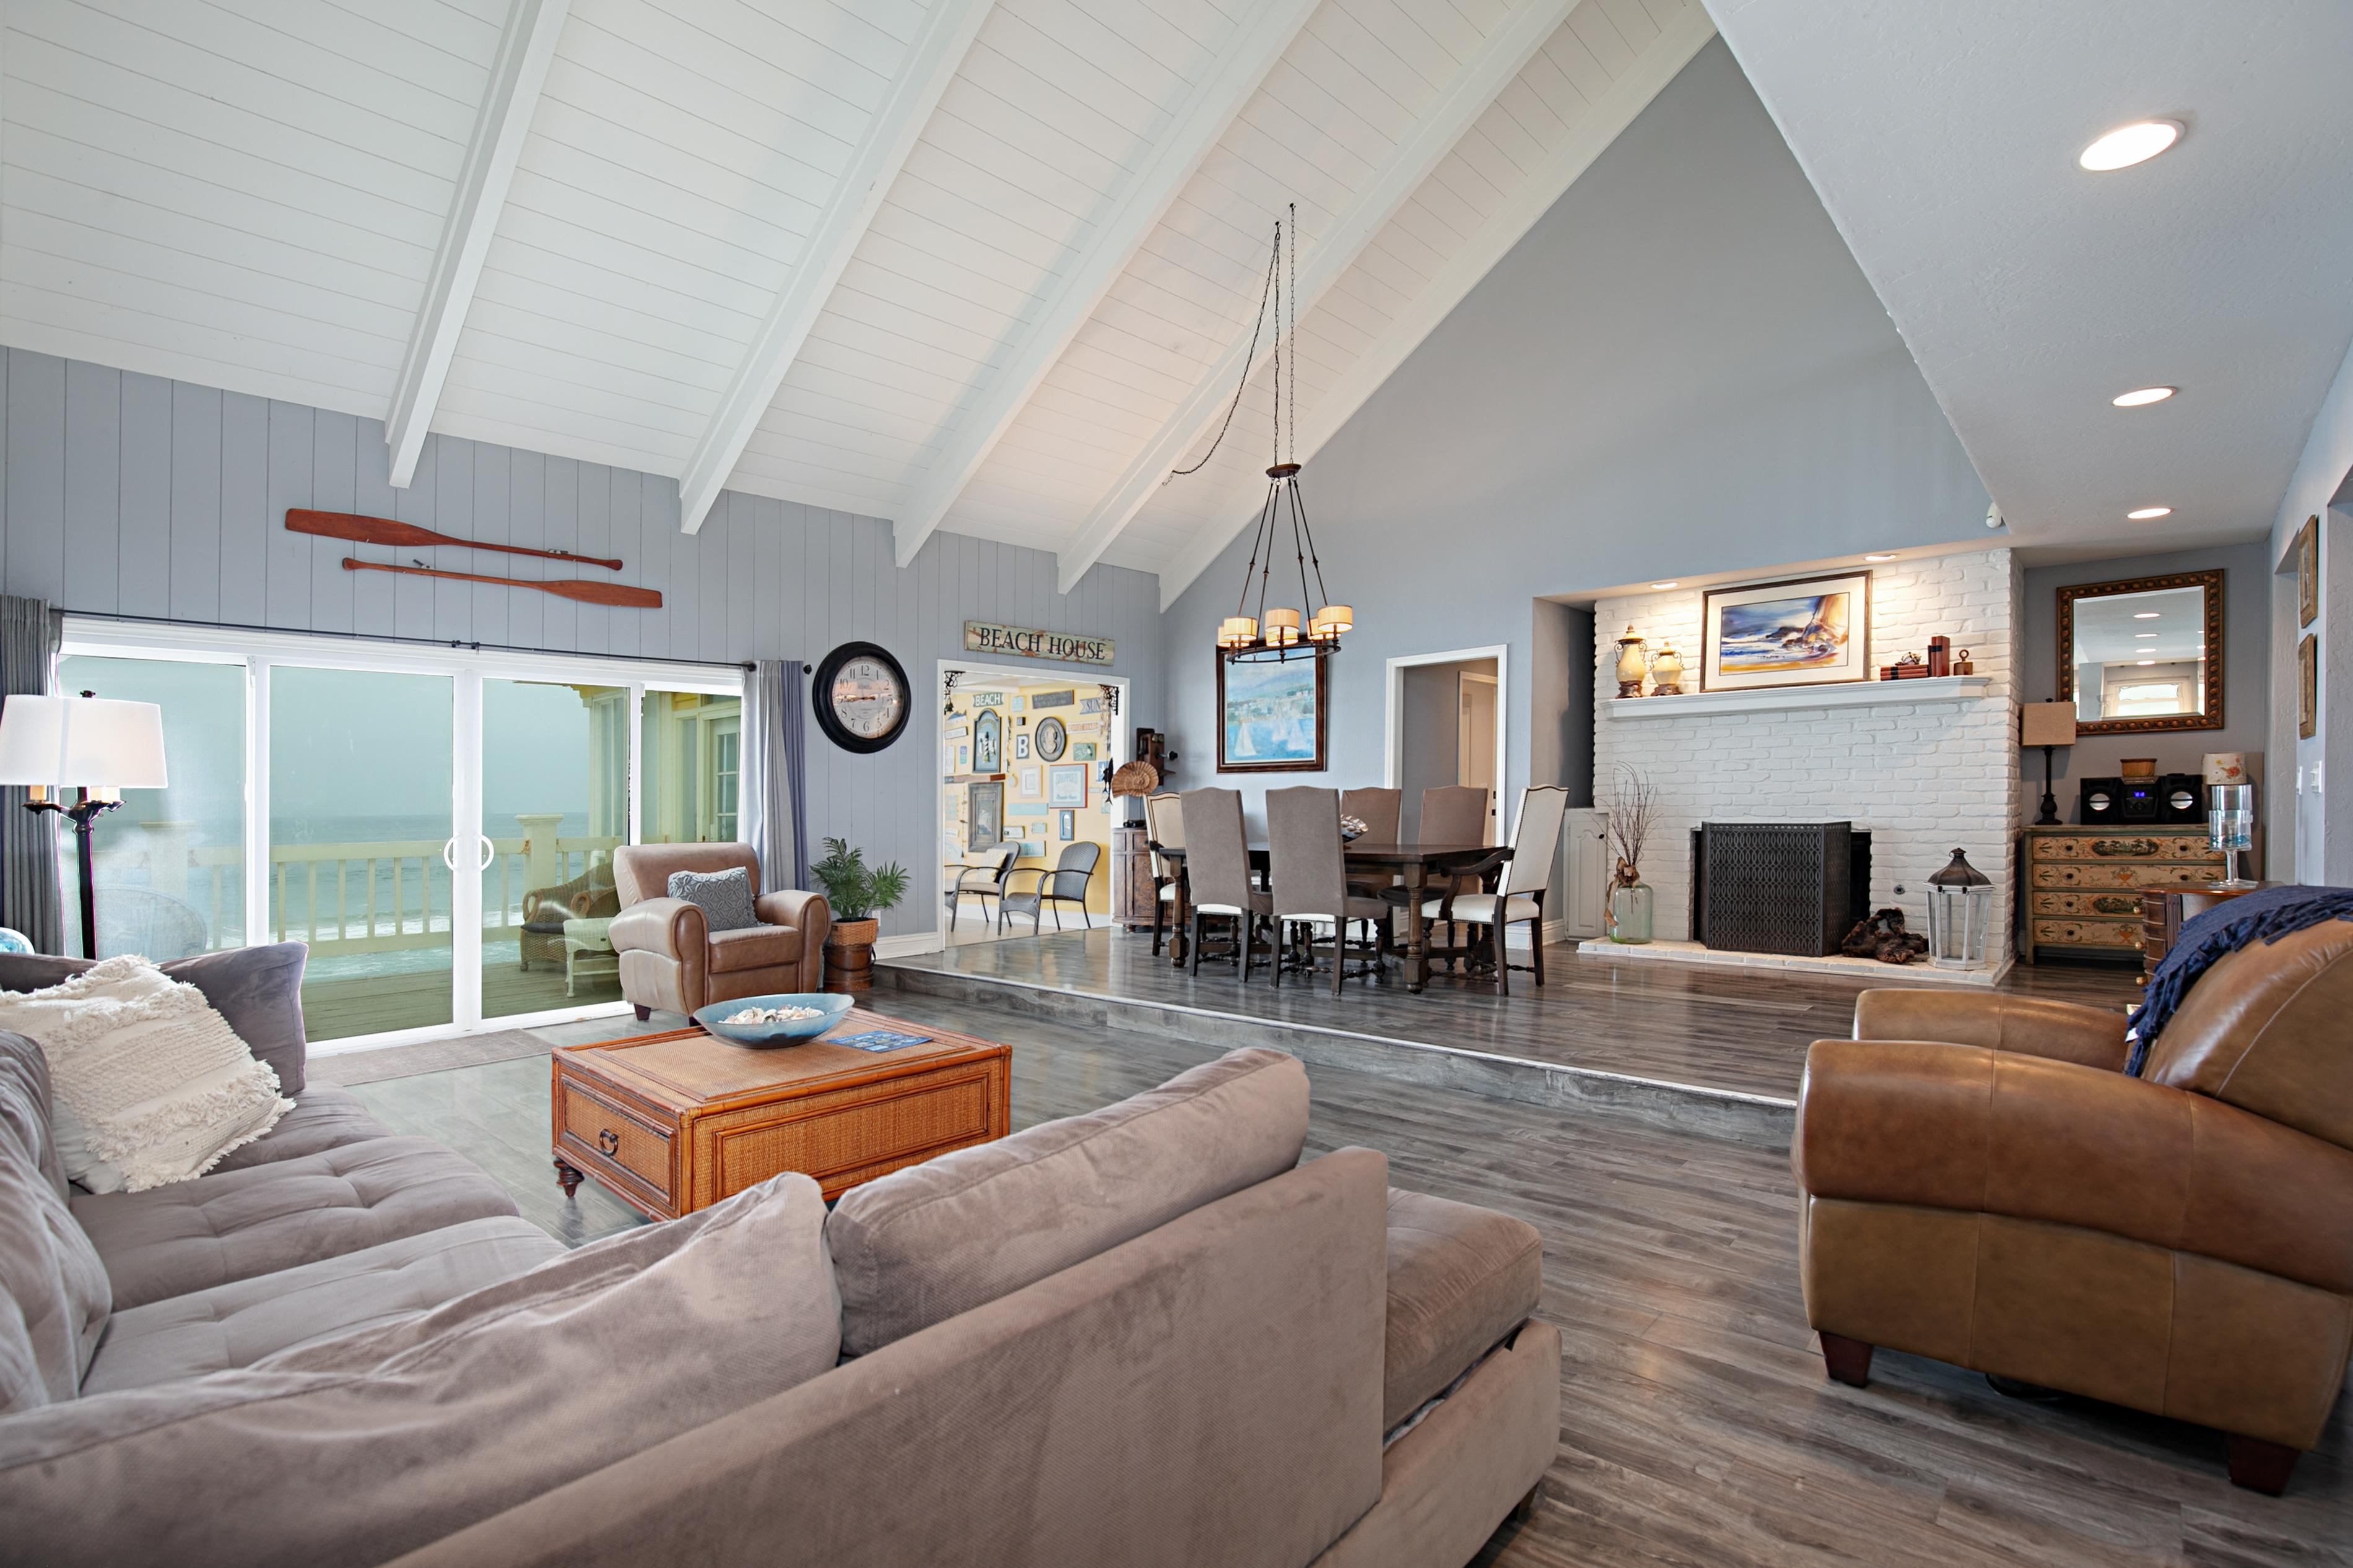 Vaulted ceilings soar in the open-concept living room.